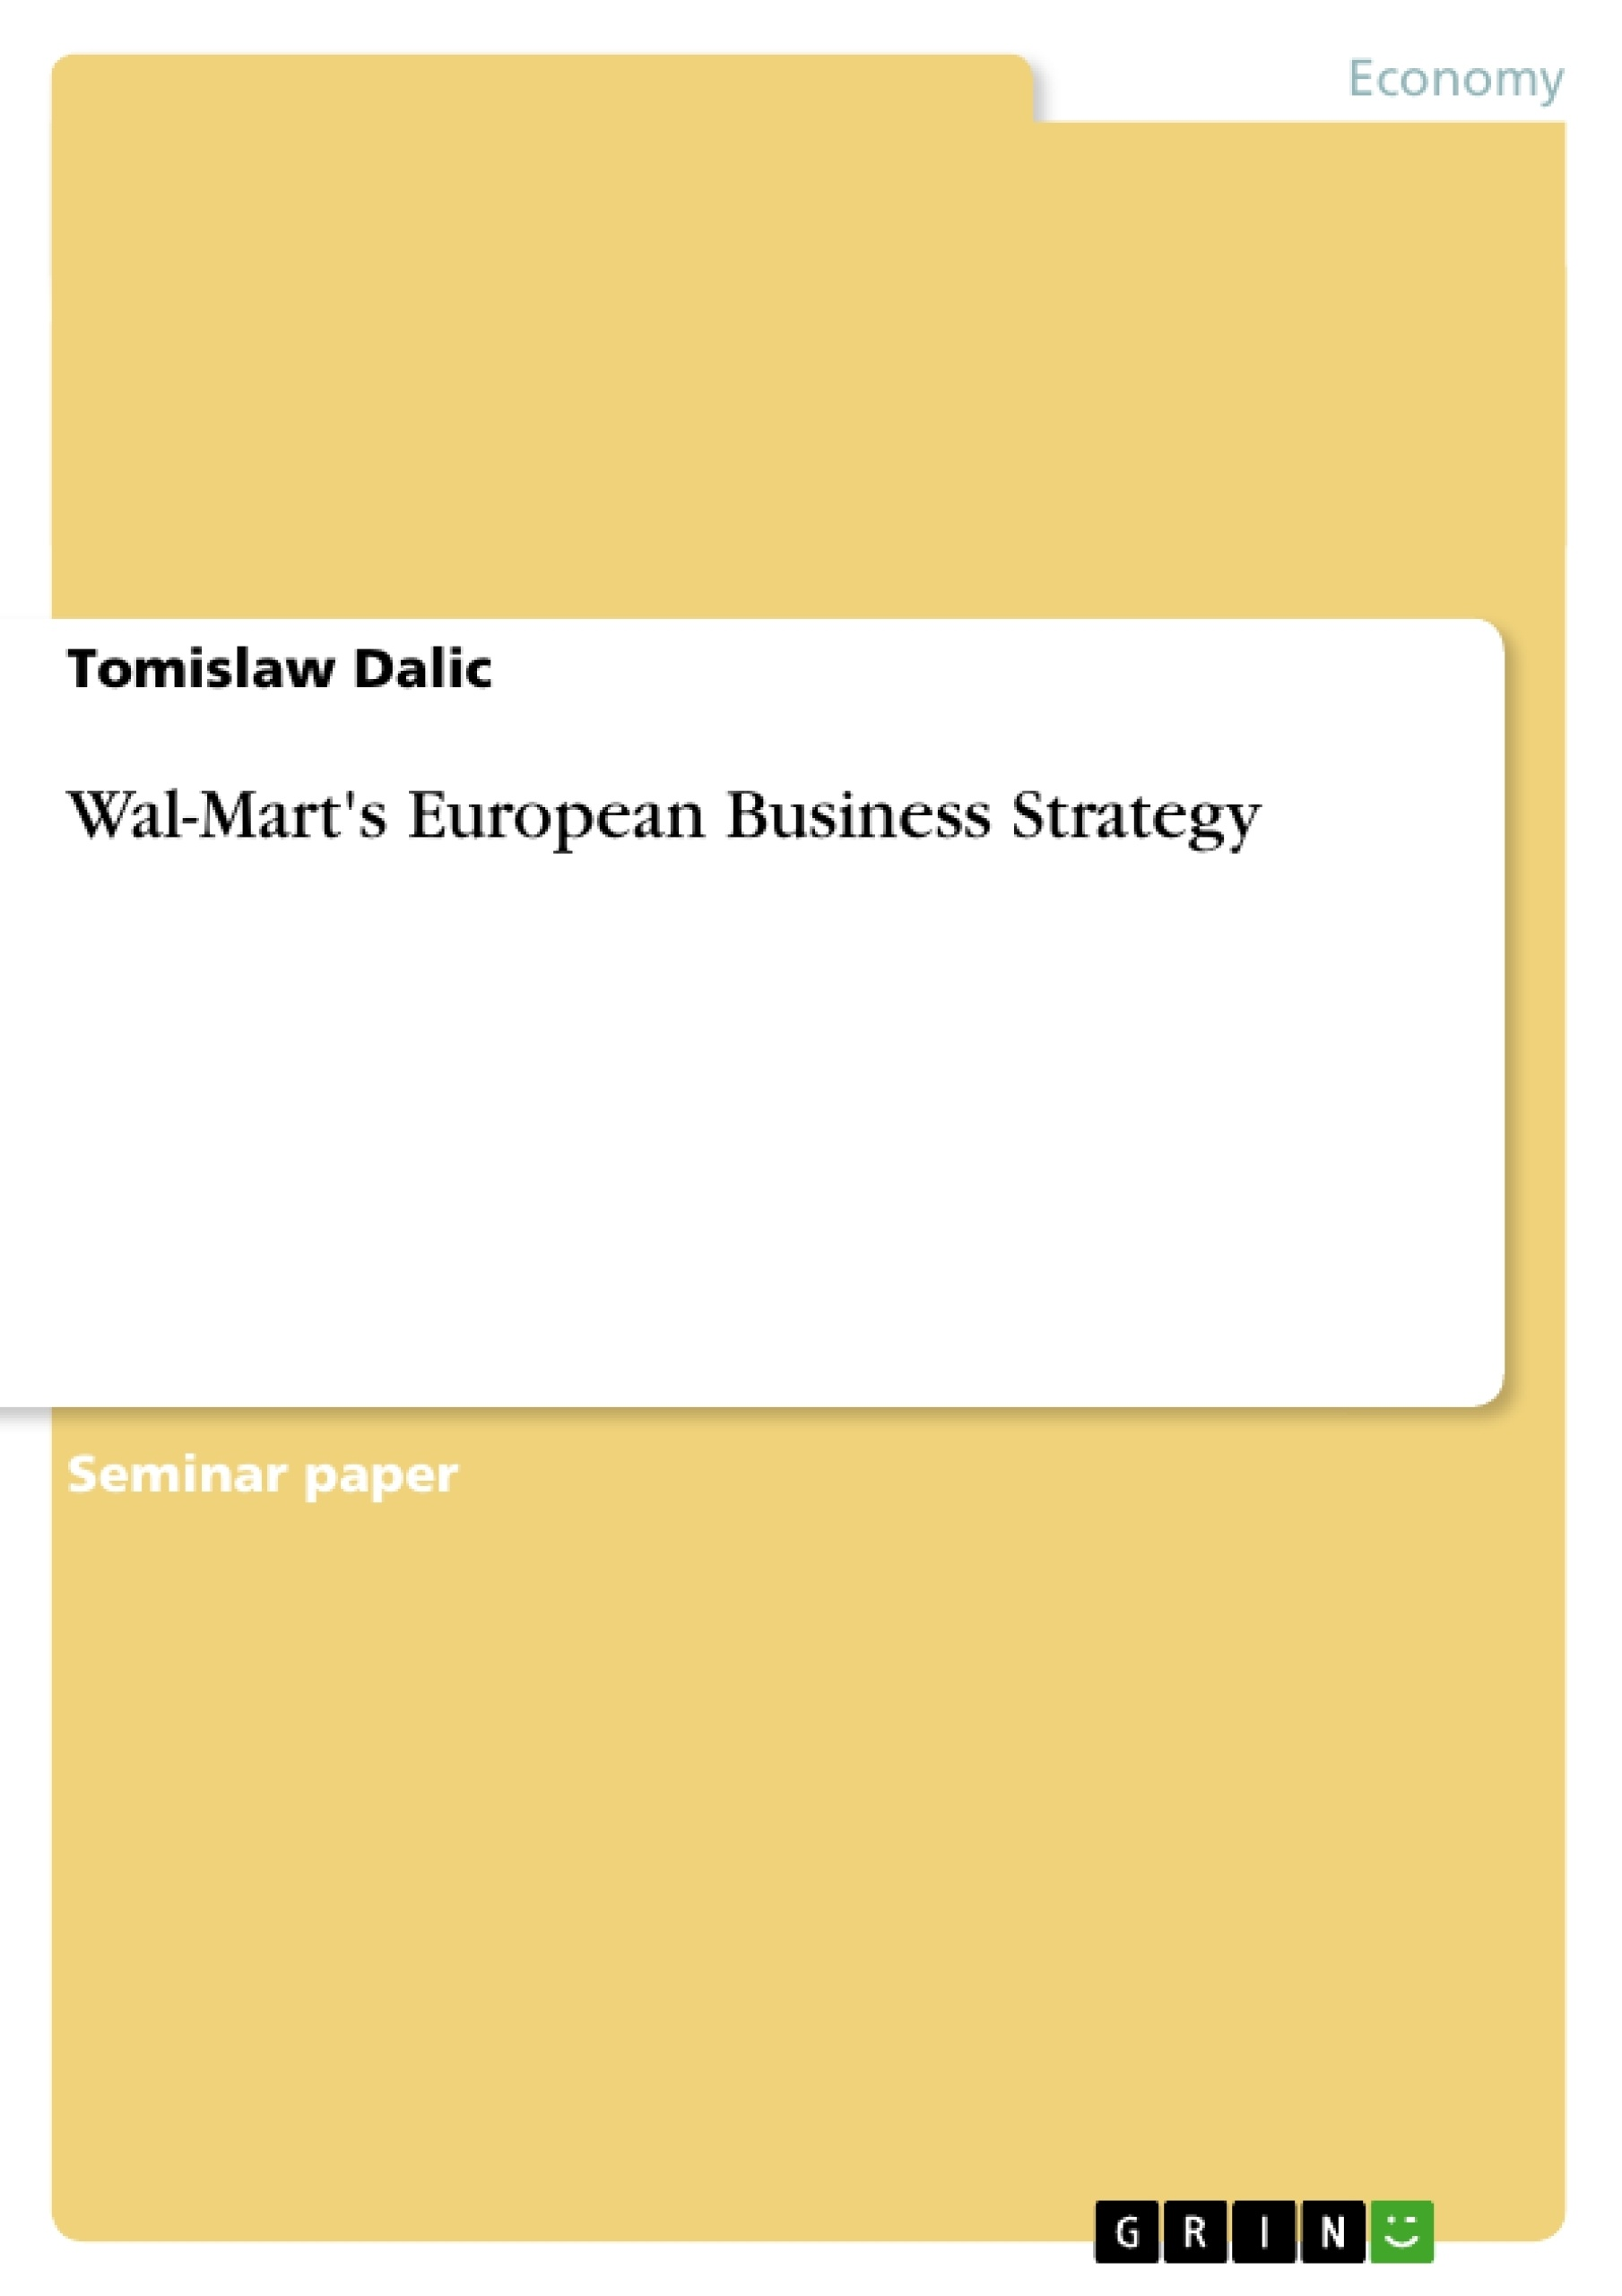 GRIN - Wal-Mart's European Business Strategy